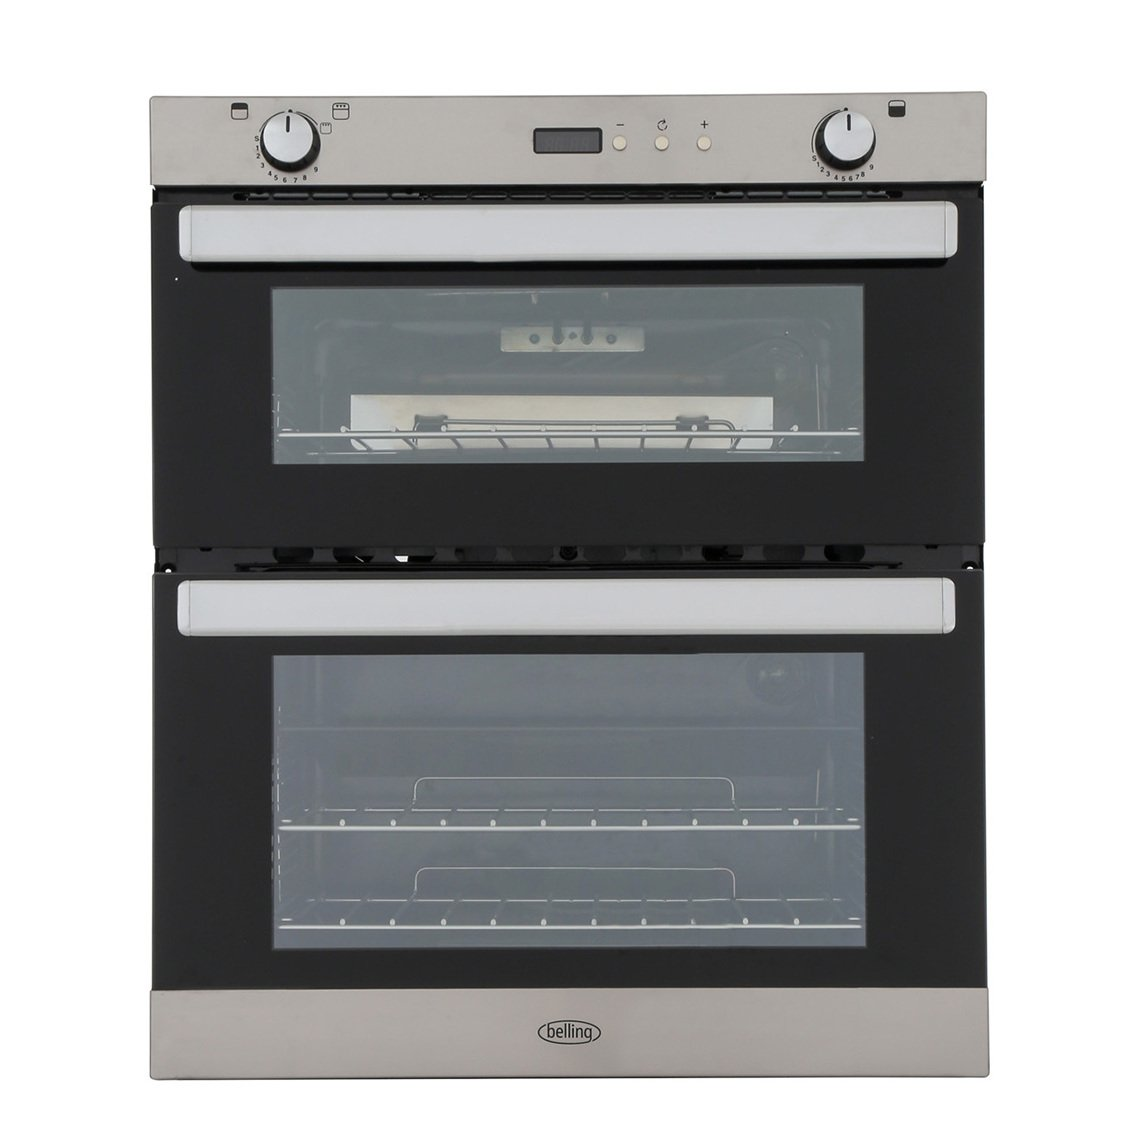 Belling BI702G Stainless Steel Double Built Under Gas Oven